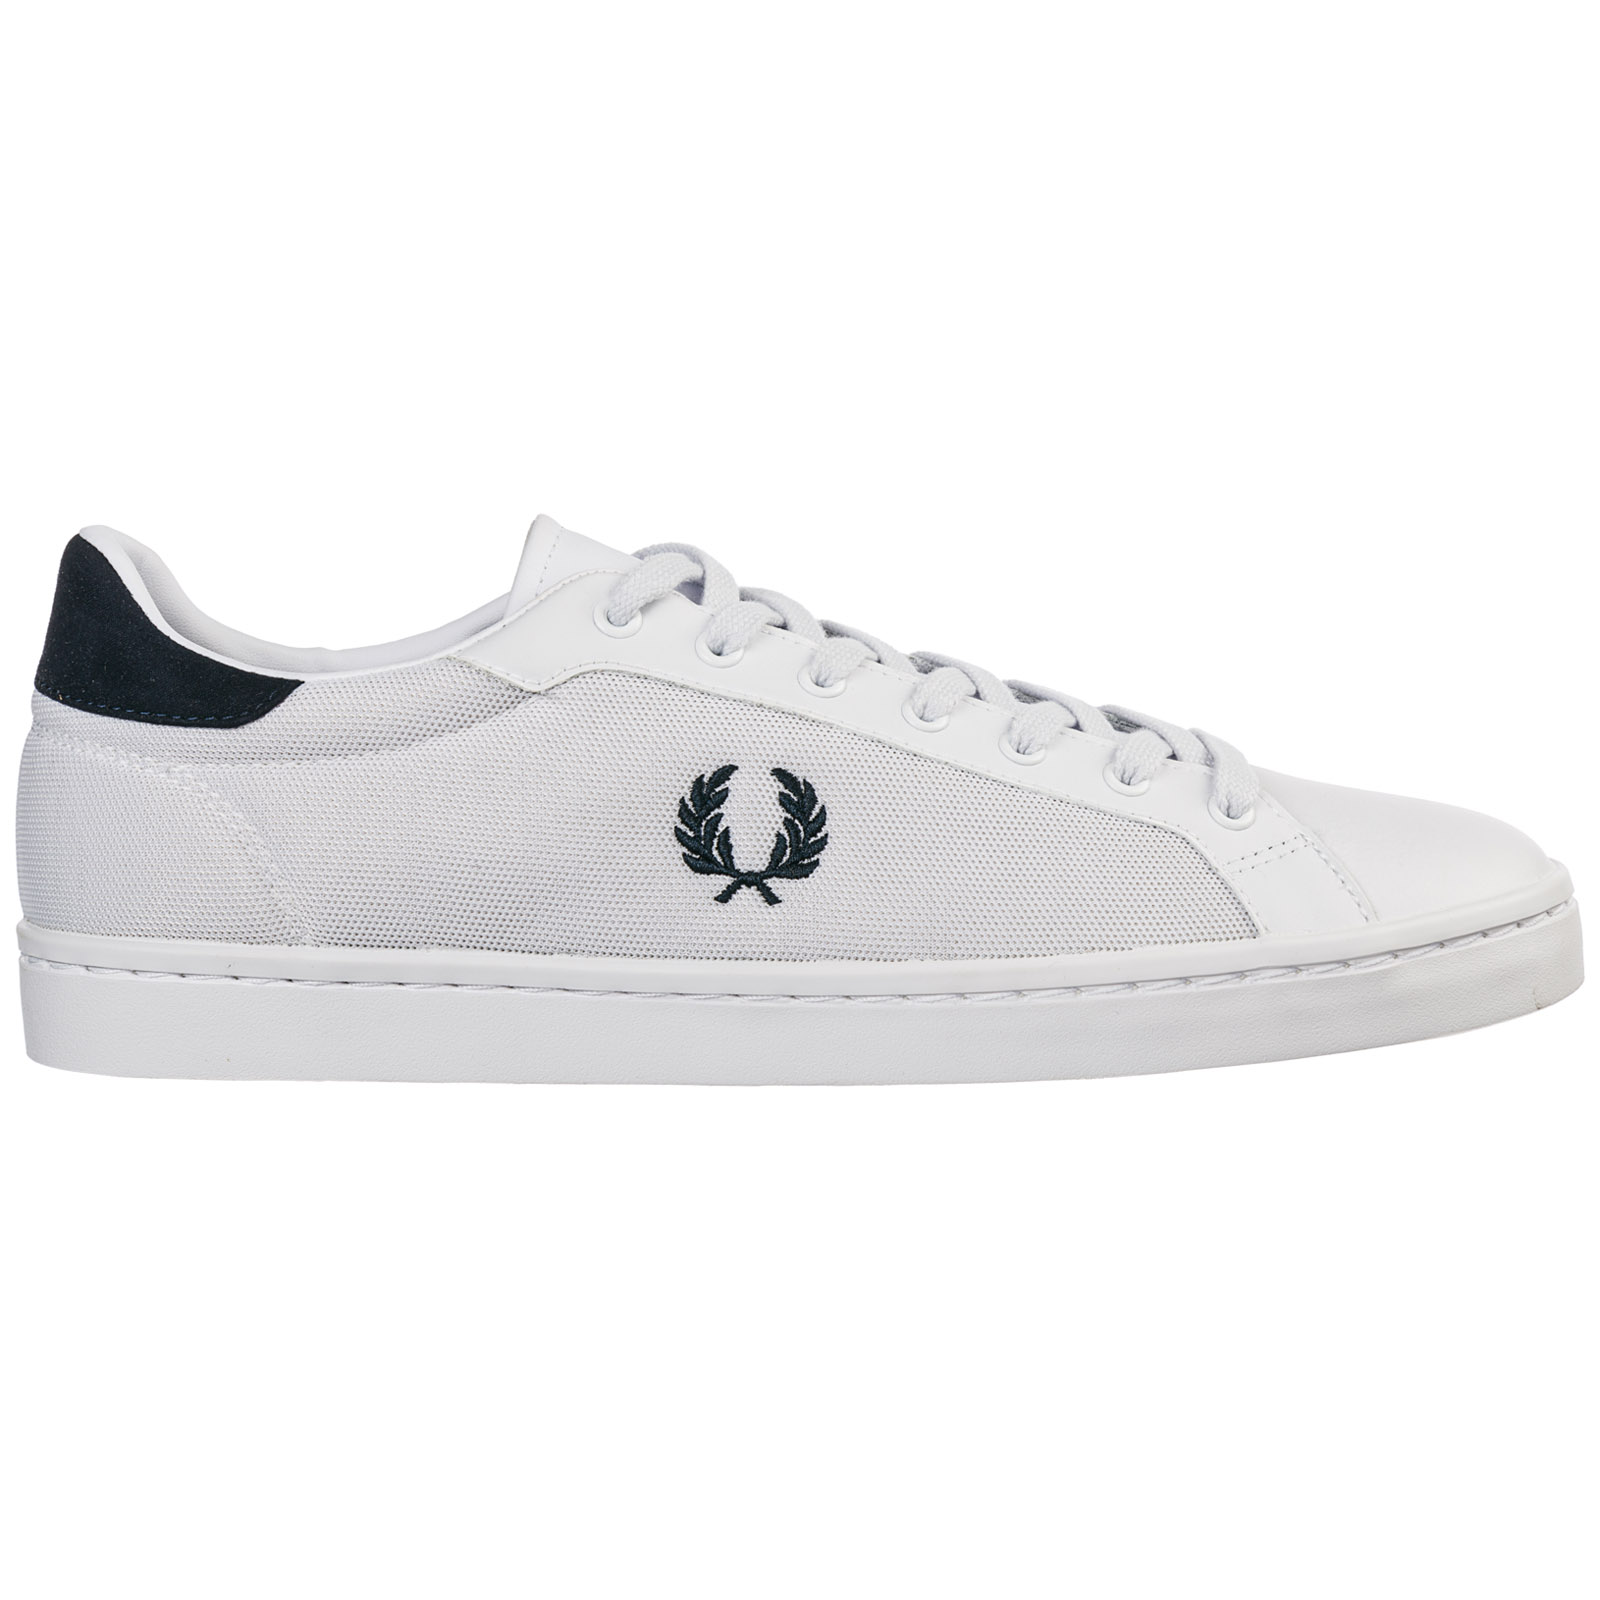 Sneakers Fred Perry b5119 bianco